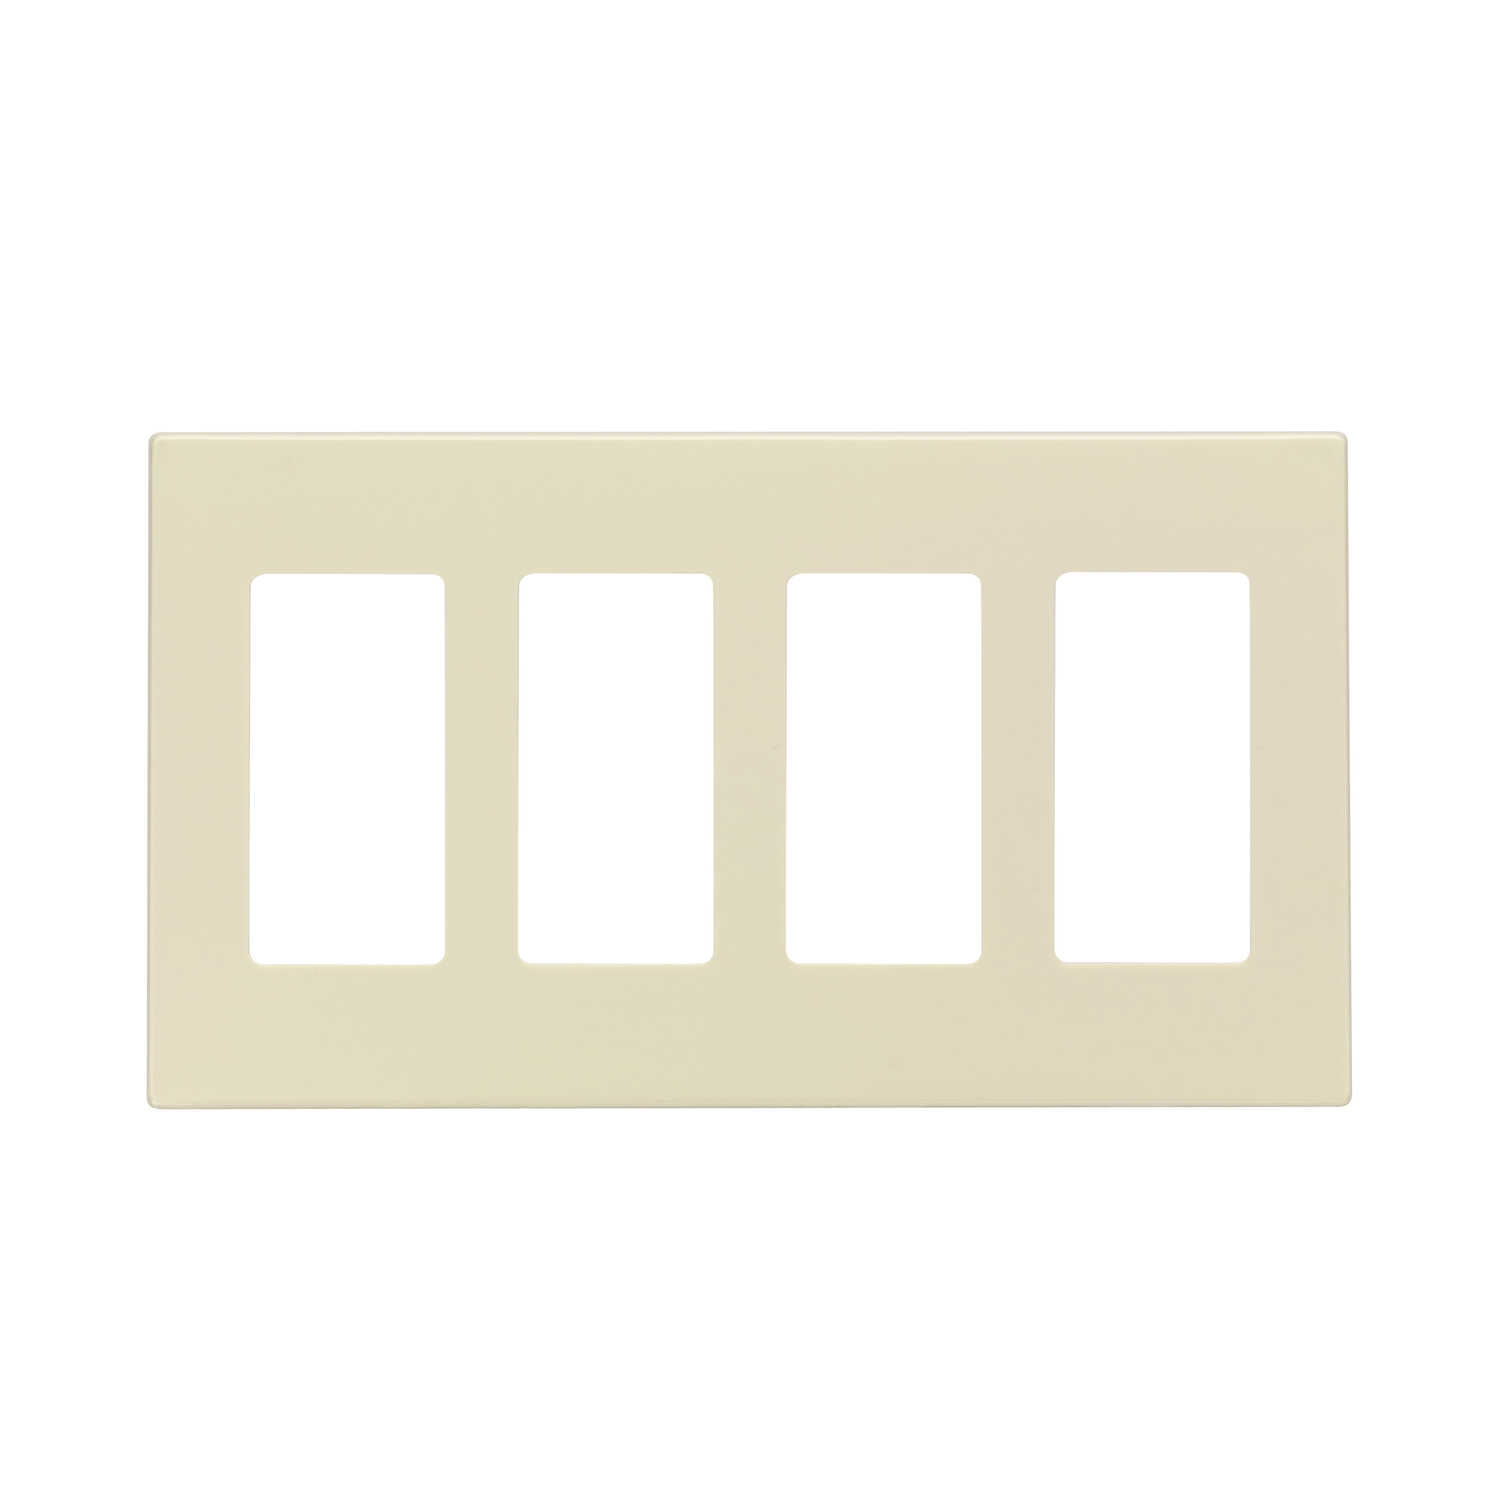 Leviton  Almond  4 gang Polycarbonate  Rocker  Screwless Wall Plate  1 pk